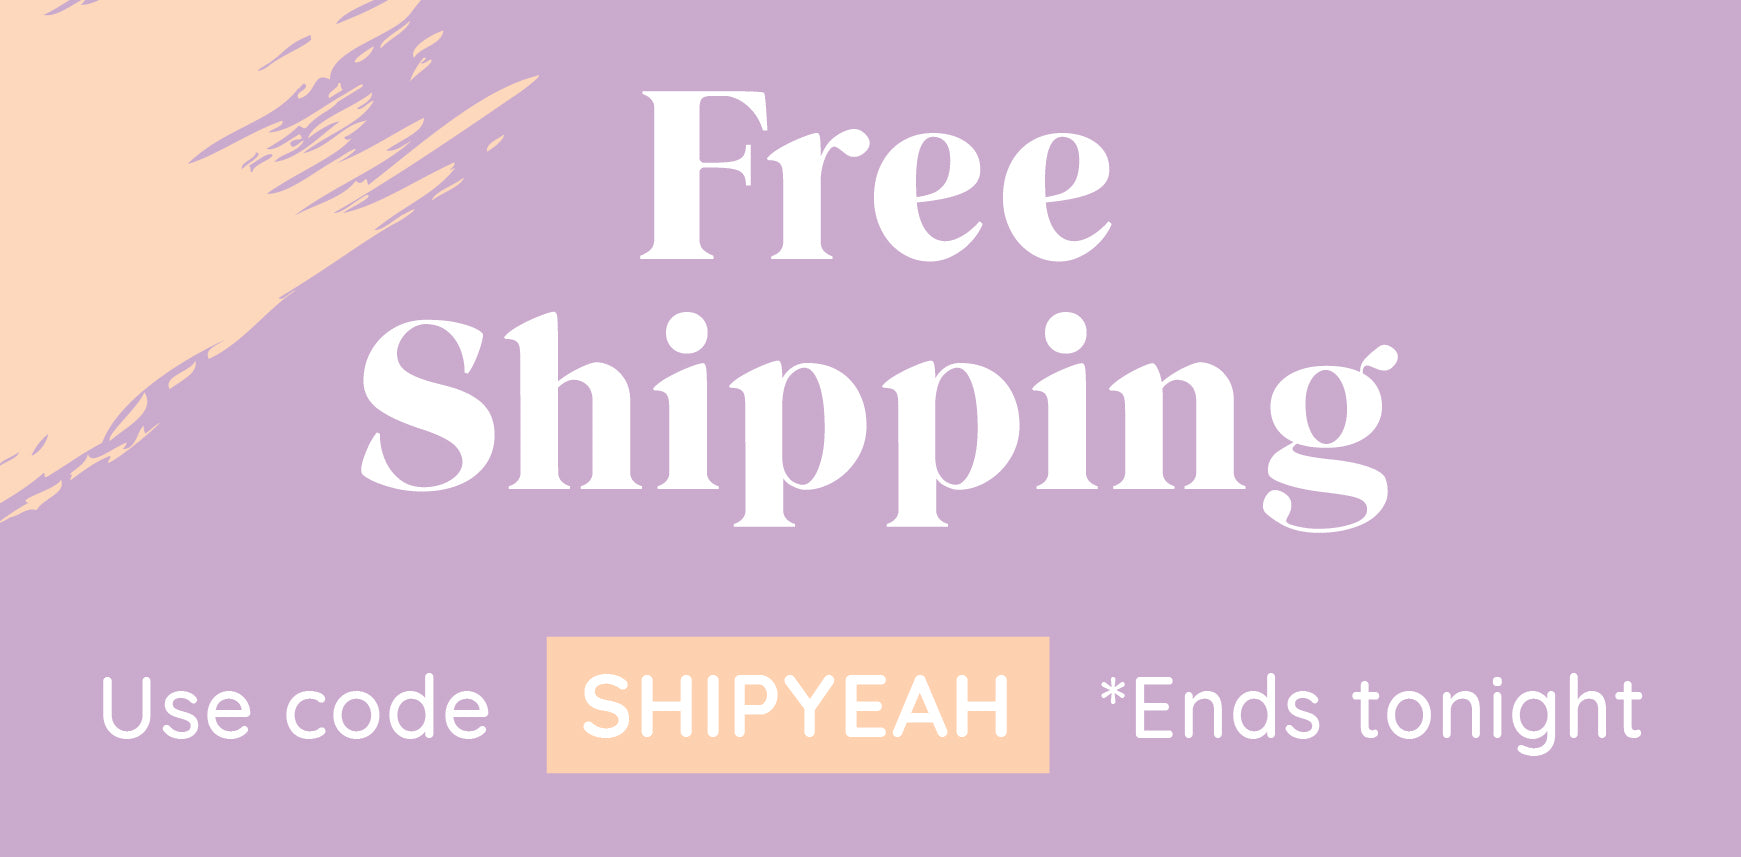 Free Shipping Use code SHIPYEAH - Ends Tonight